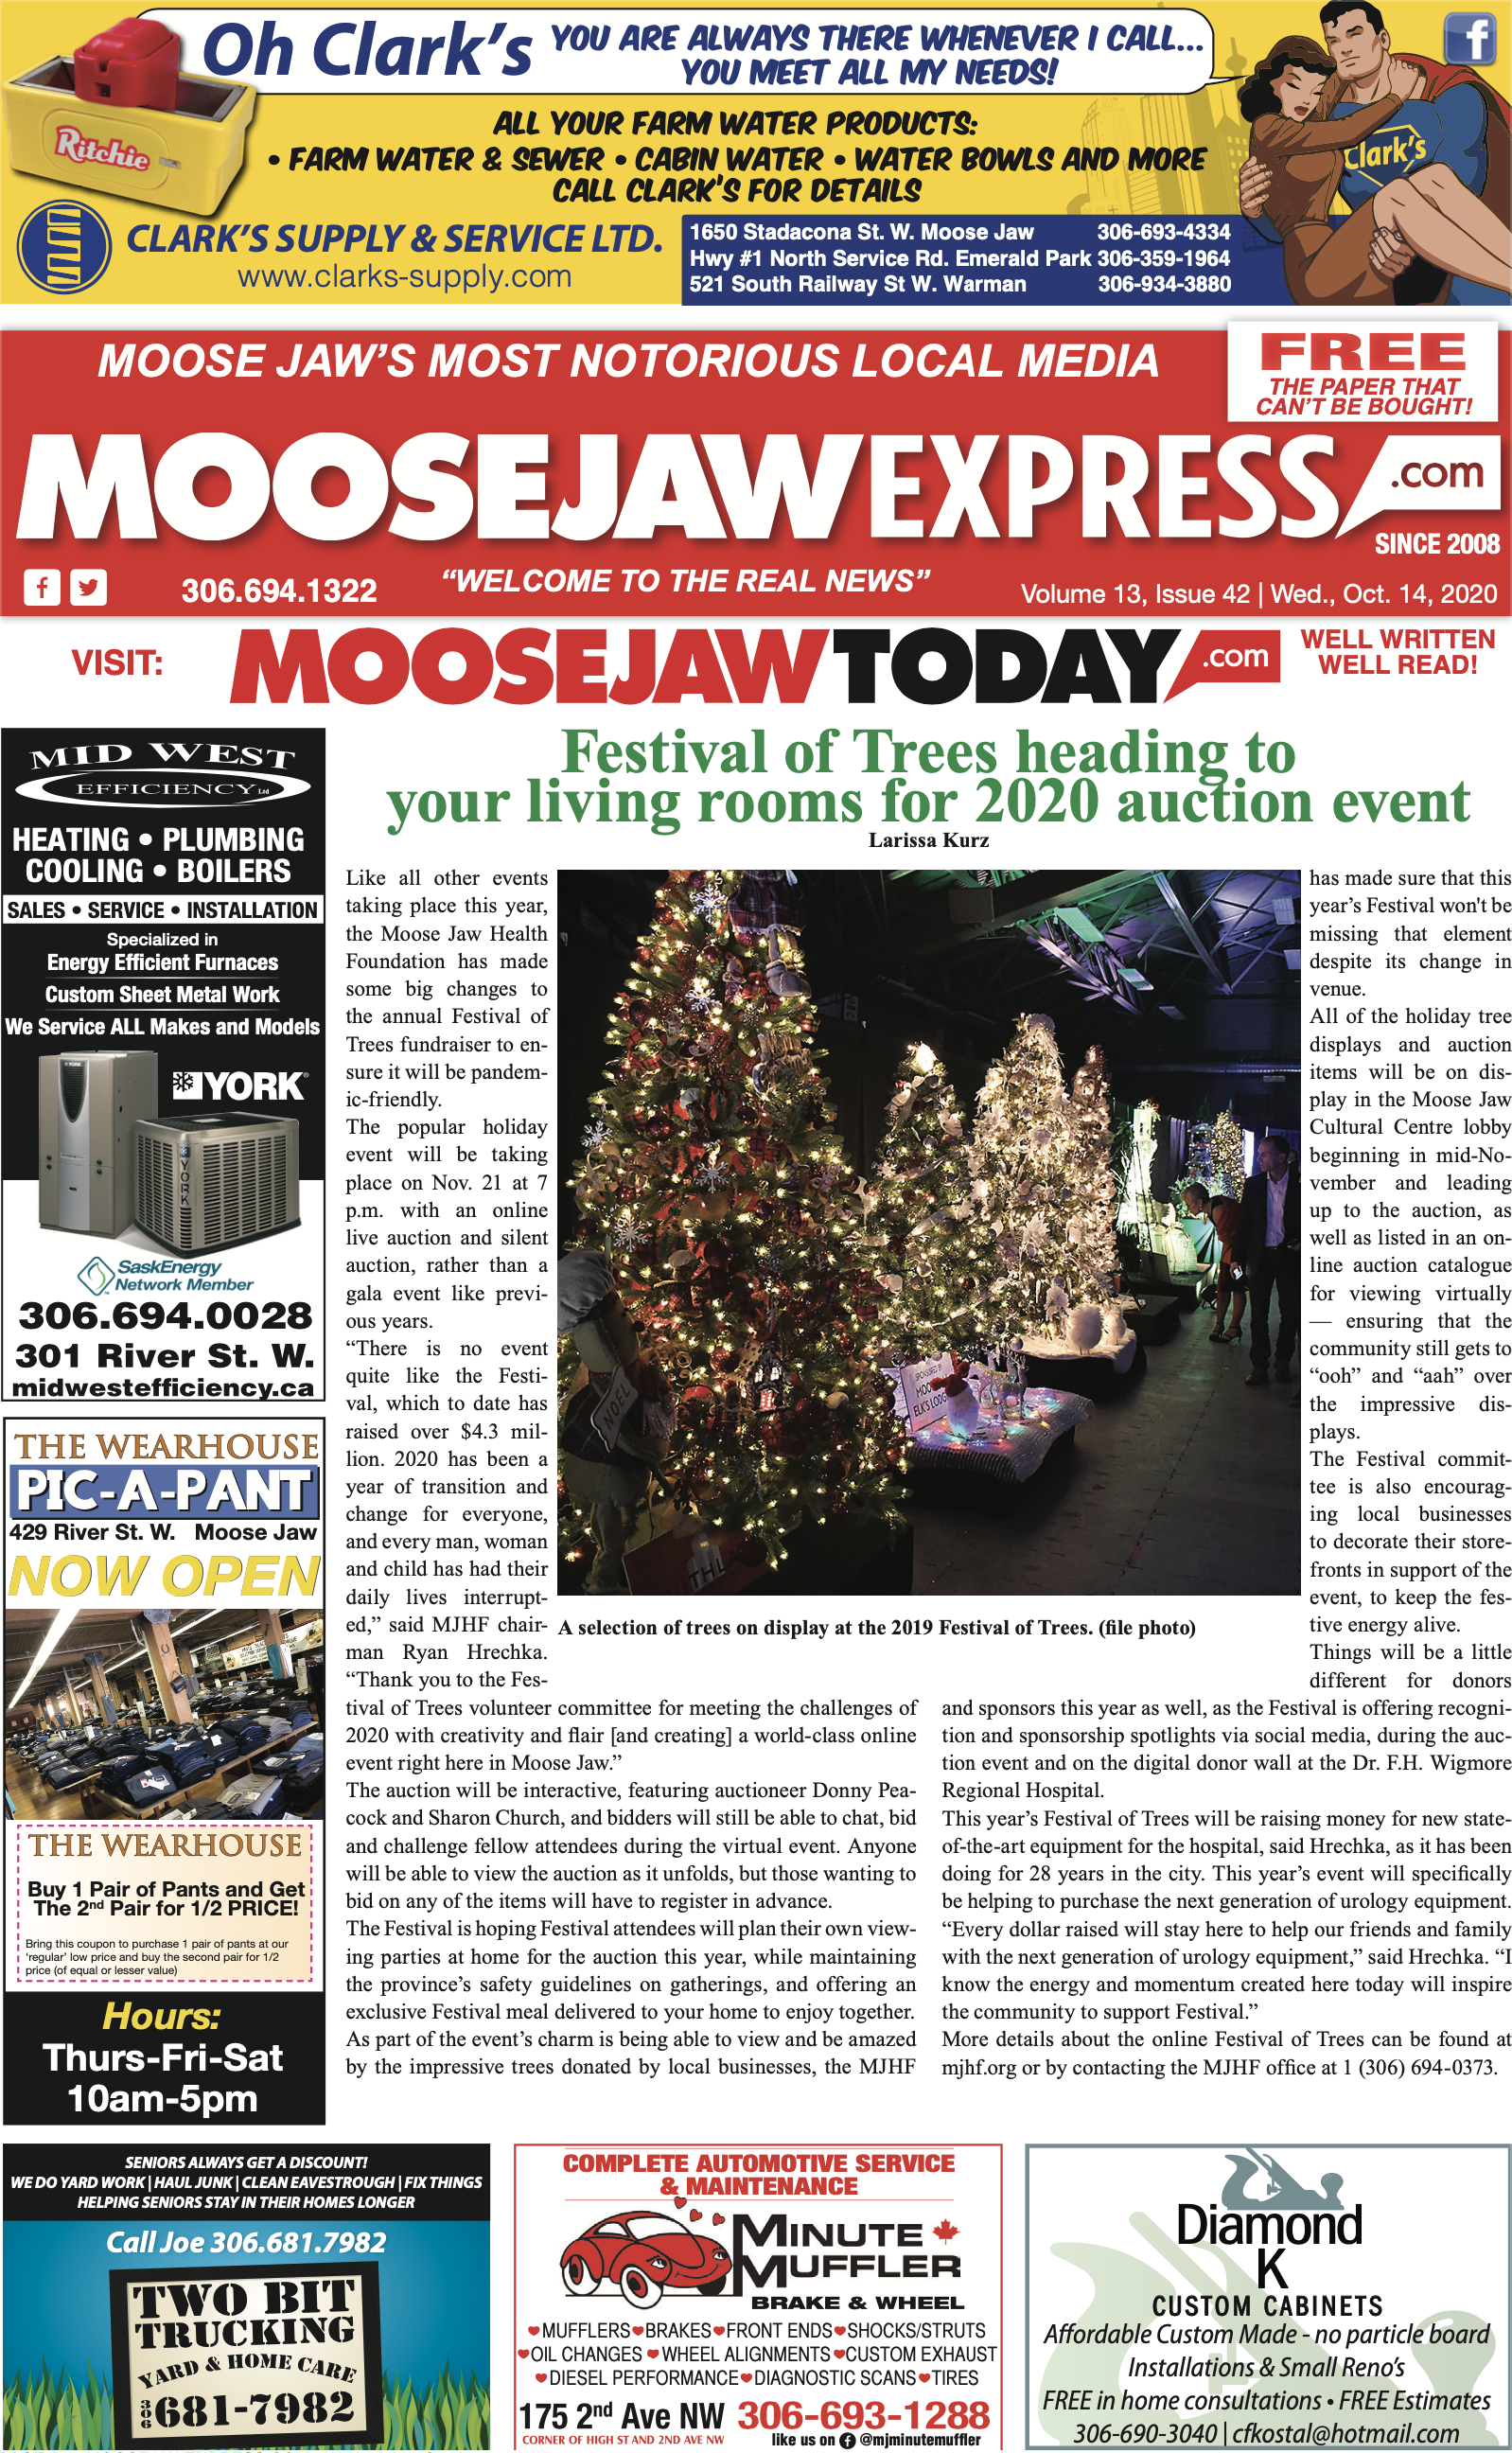 October 14th, 2020 Edition of Moose Jaw Express